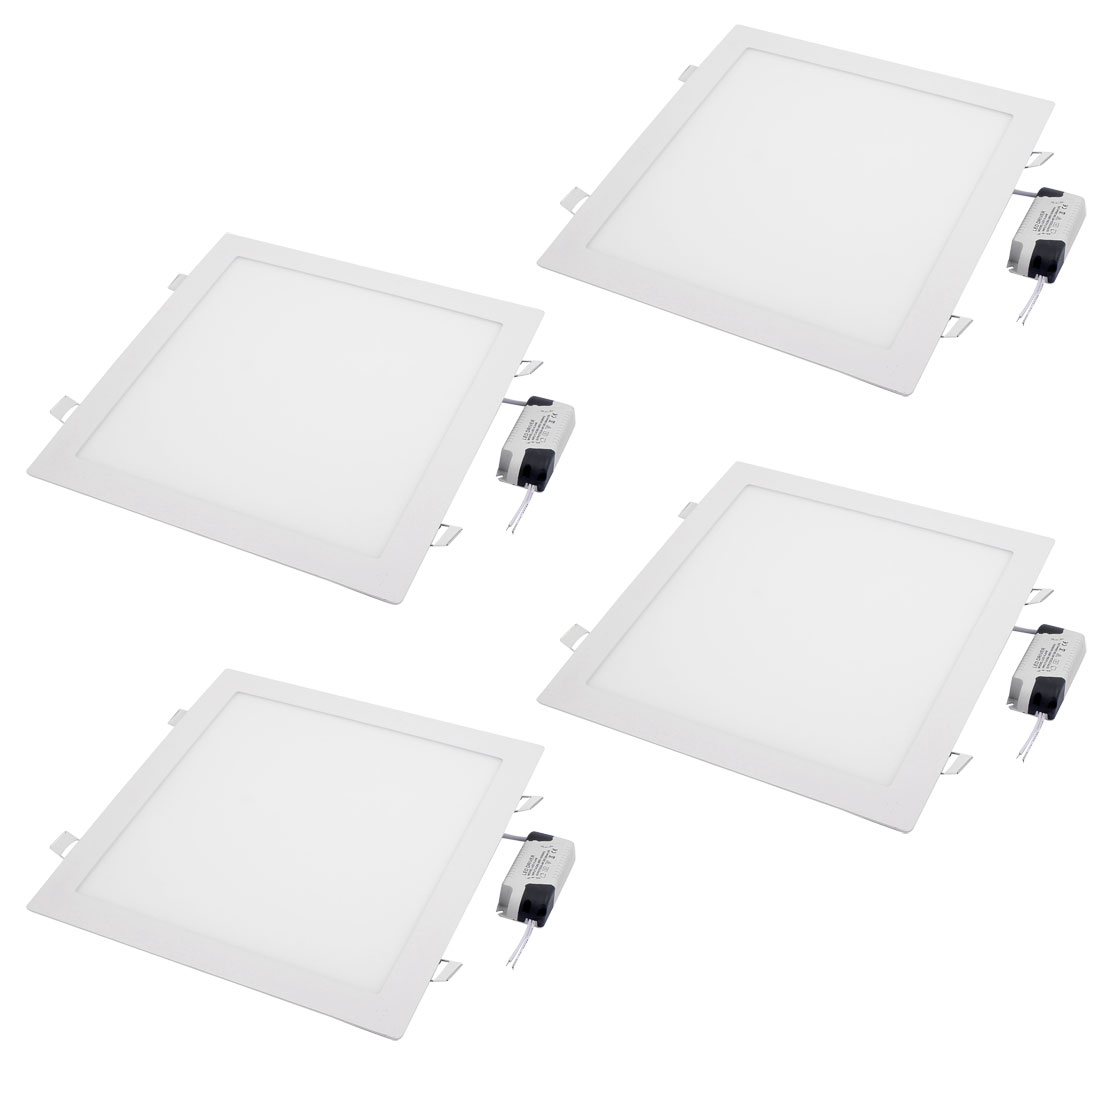 4Pcs AC85V-265V 24W Ultra Slim Square LED Recessed Ceiling Panel Light Lamp White